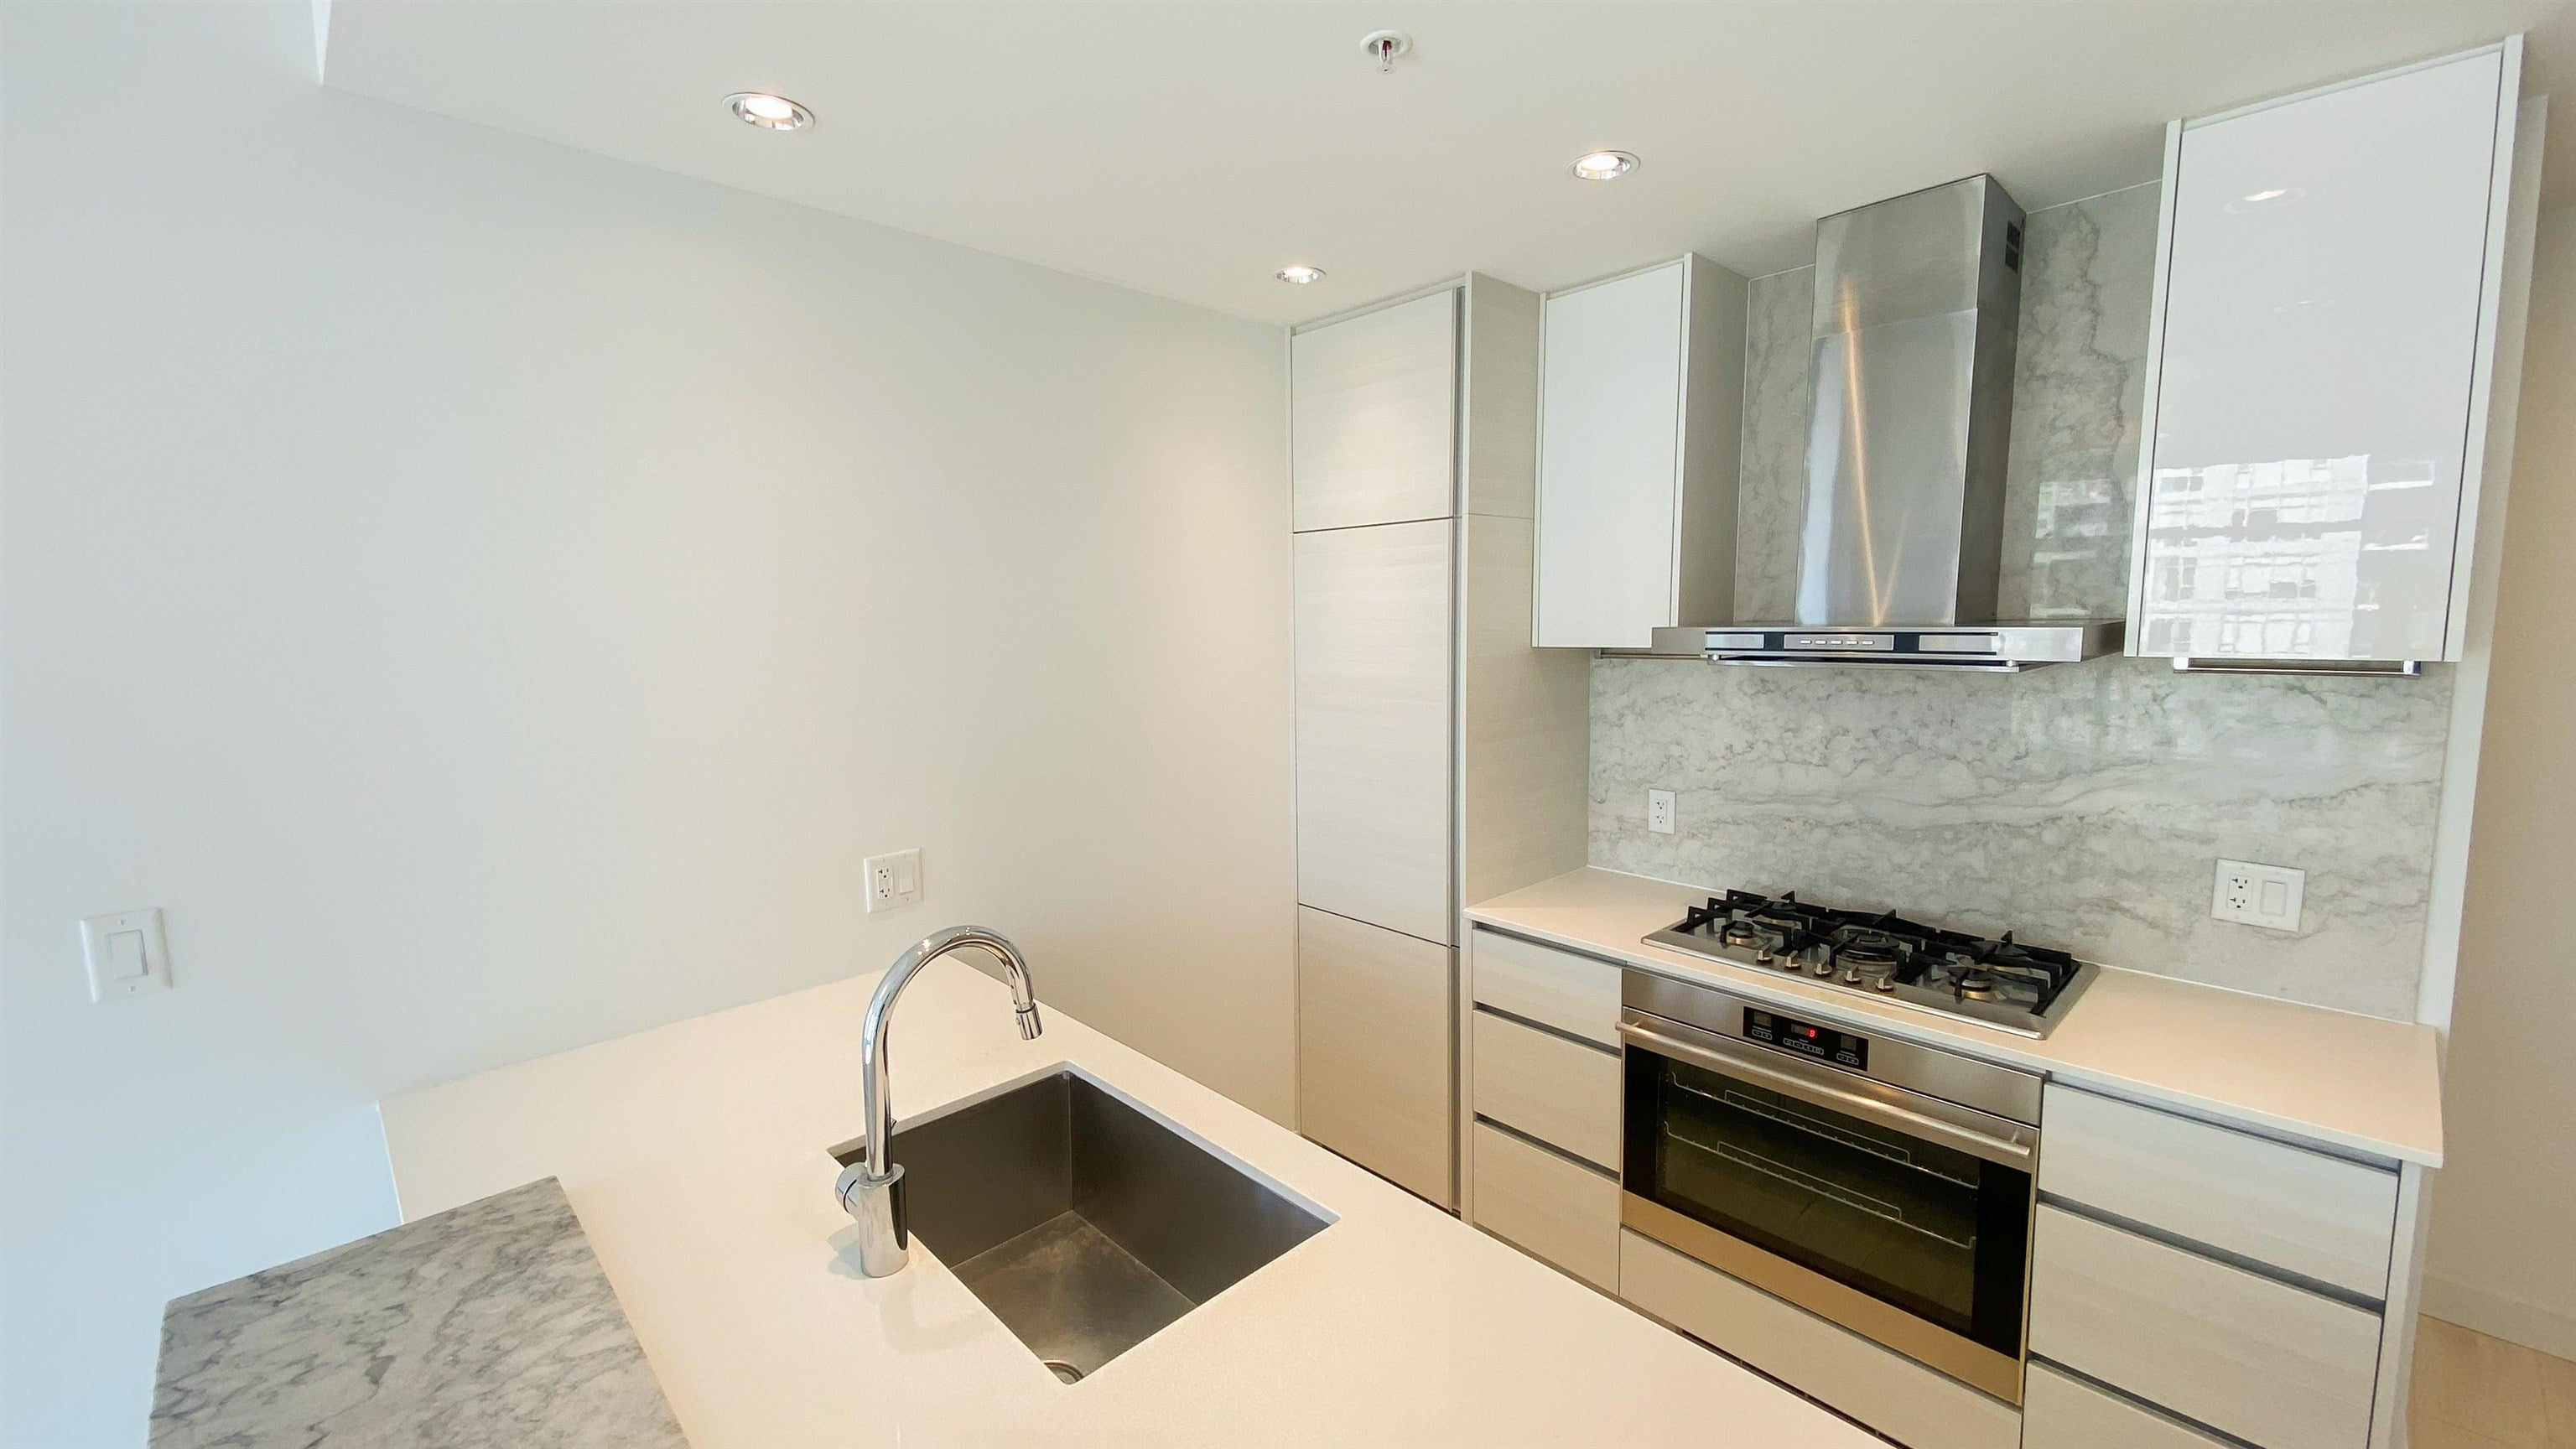 2510 4670 ASSEMBLY WAY - Metrotown Apartment/Condo for sale, 2 Bedrooms (R2625732) - #17